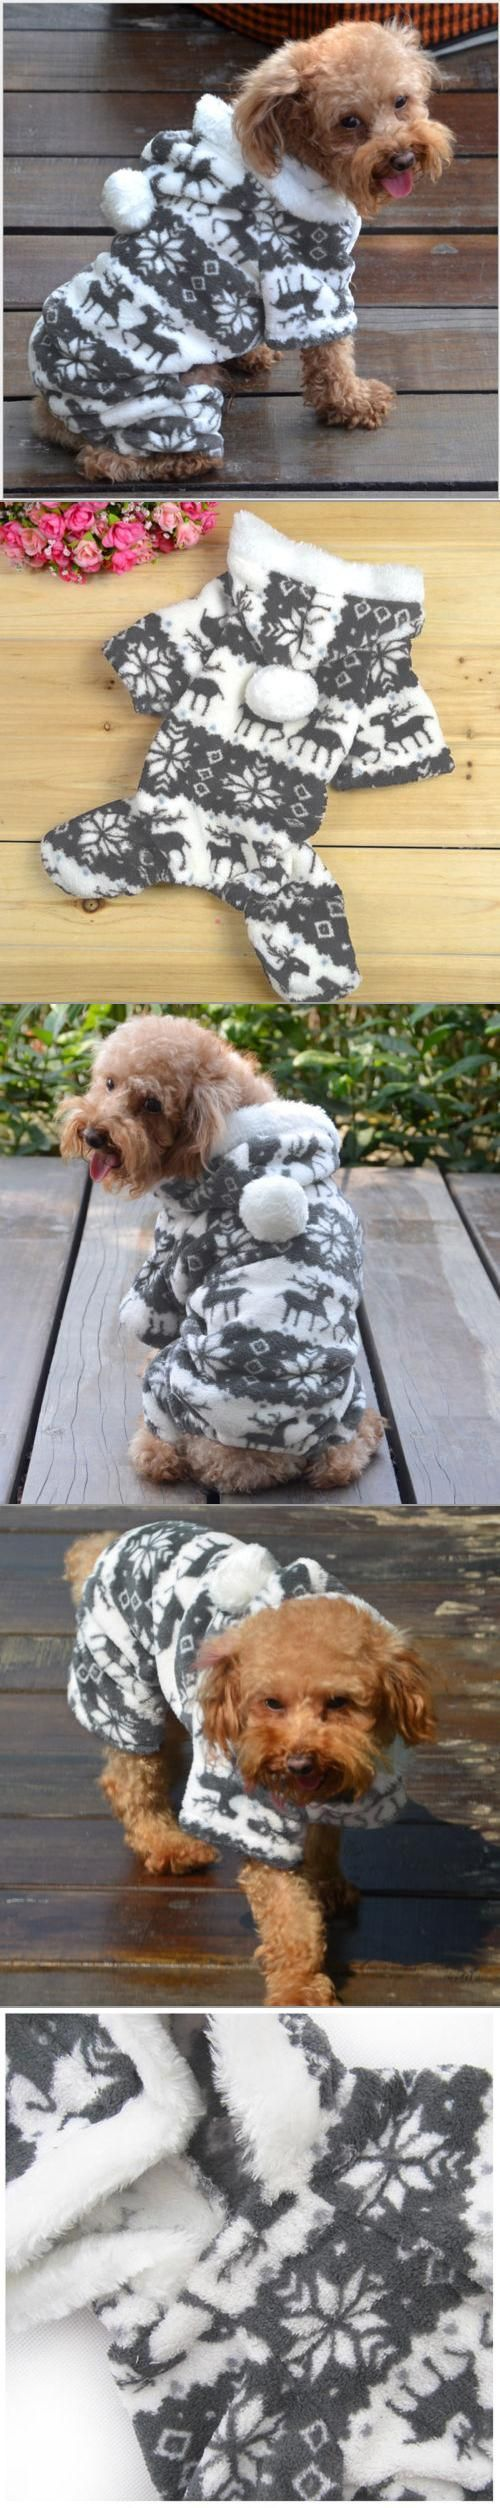 """Don't judge. My havanese, Charlie, actually needs this. I don't care if people say """"he's just a dog"""". They need protection in the winter when it gets cold. It's factual. Charlie will not get sick."""